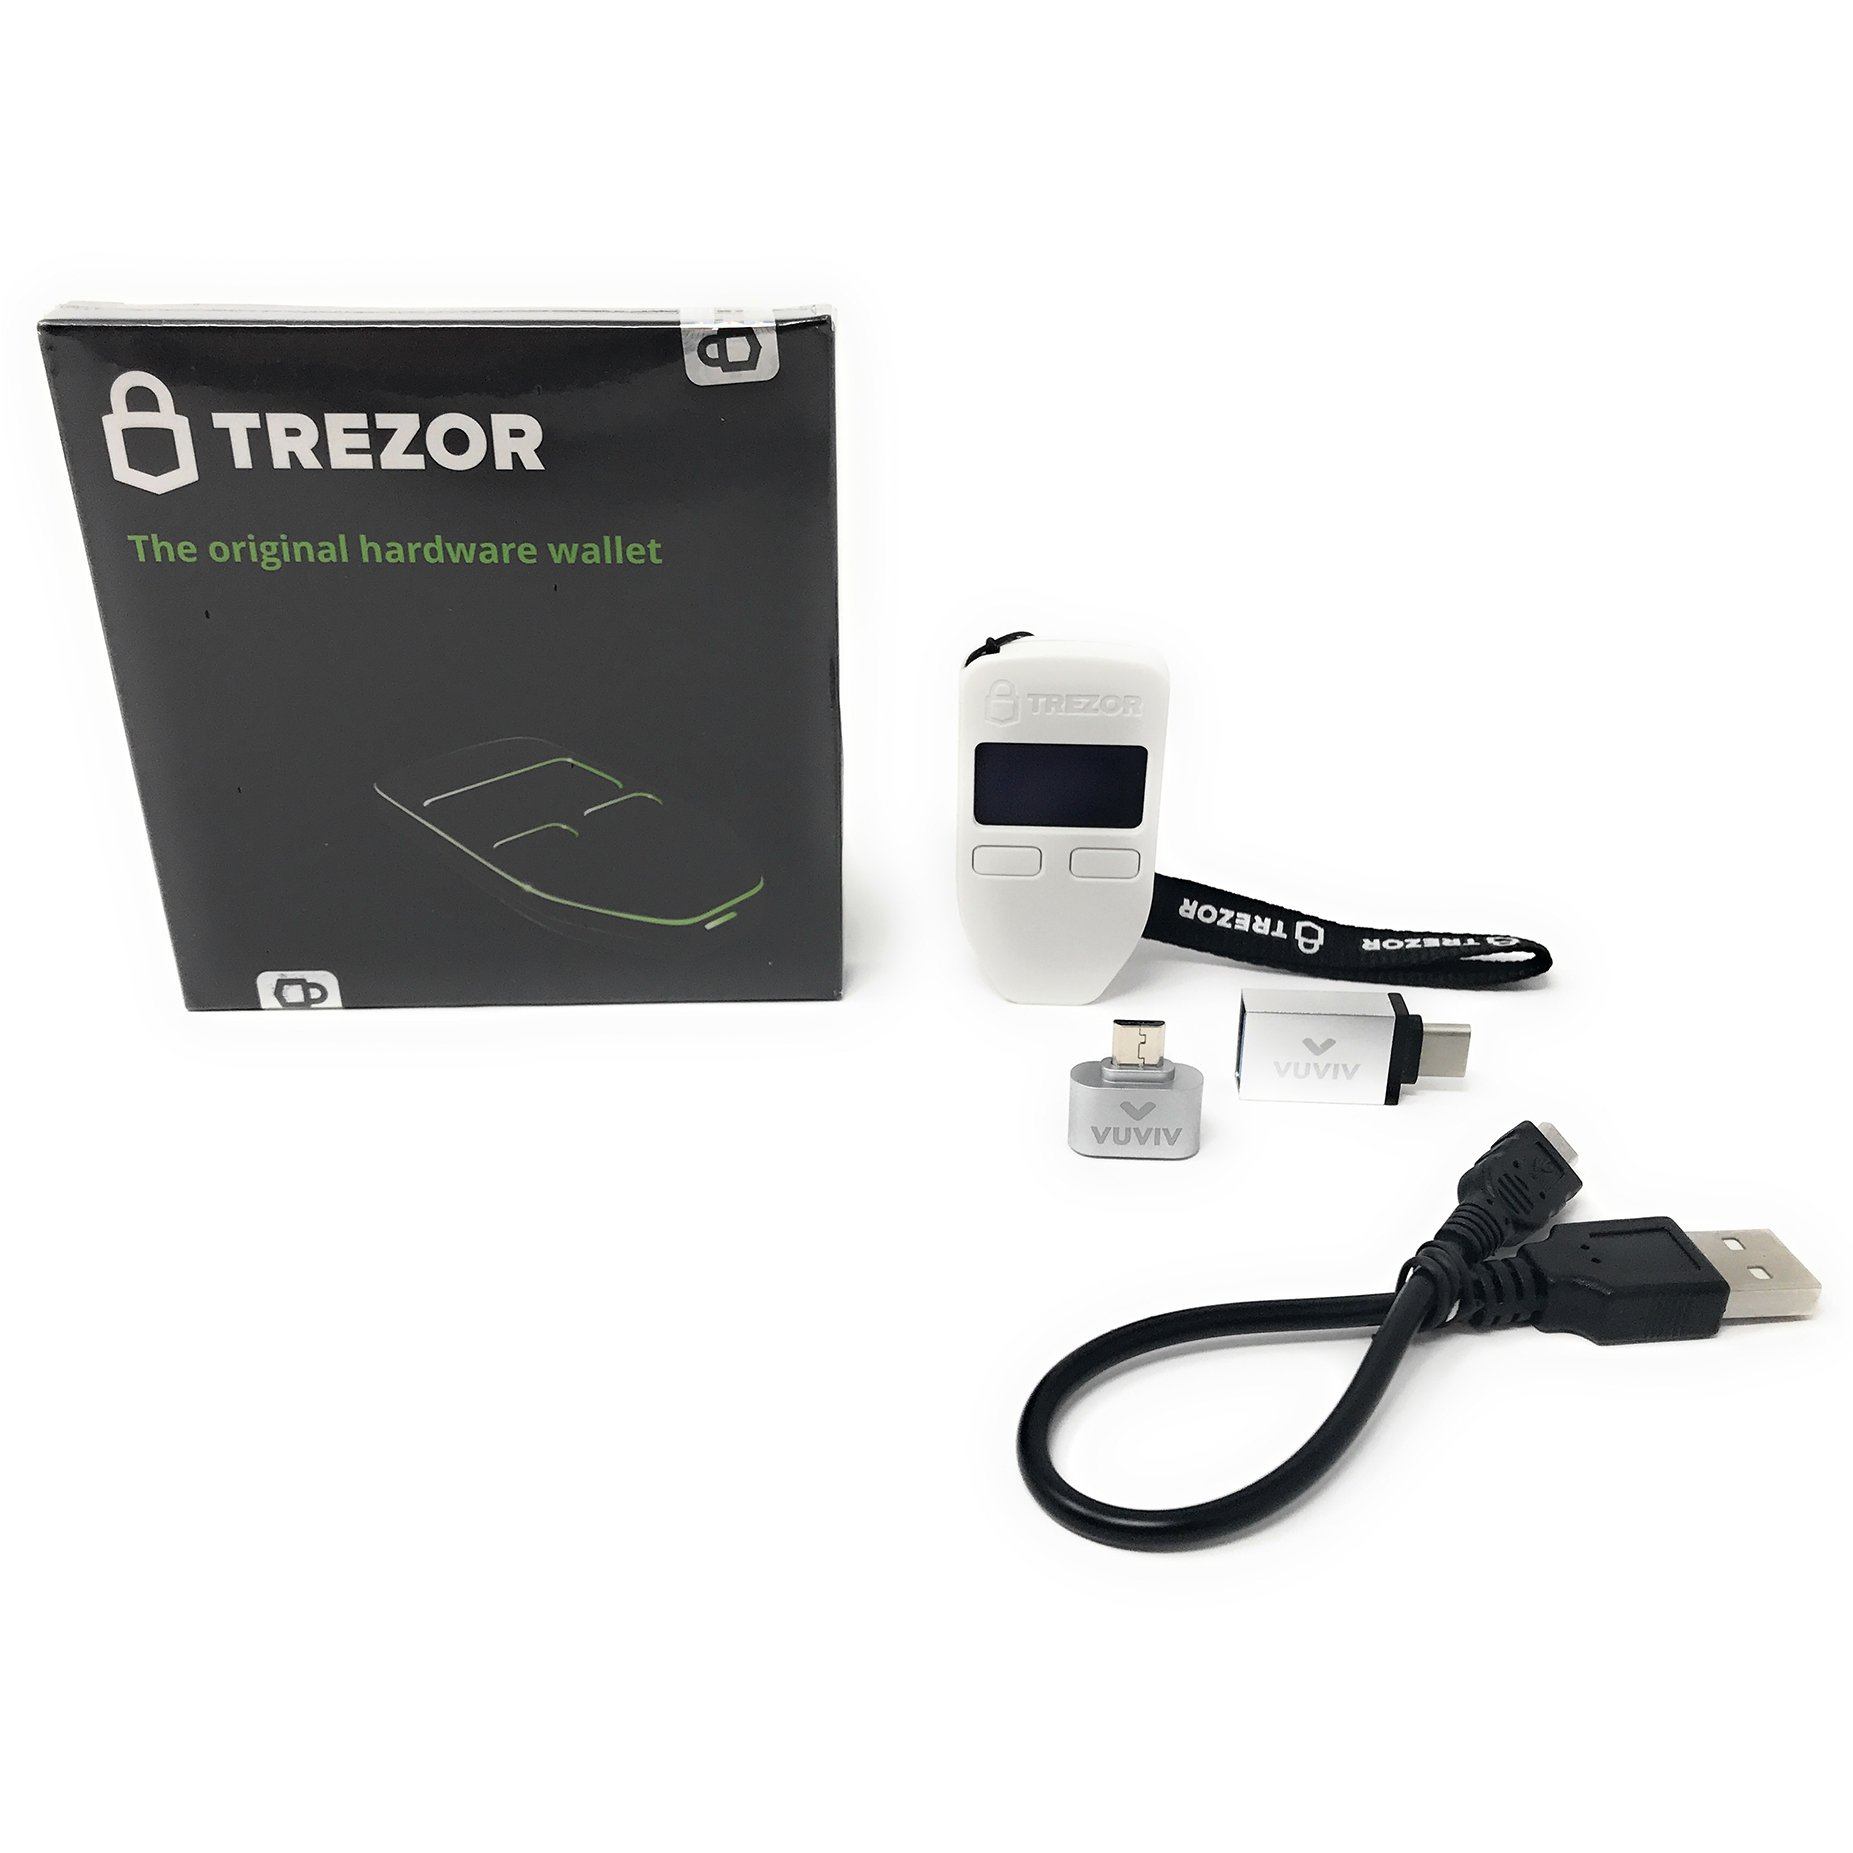 Trezor (White) Bitcoin Hardware Wallet Bundle With VUVIV Micro-USB Adapter and USB-C Adapter for MacBook (3 items) by VUVIV